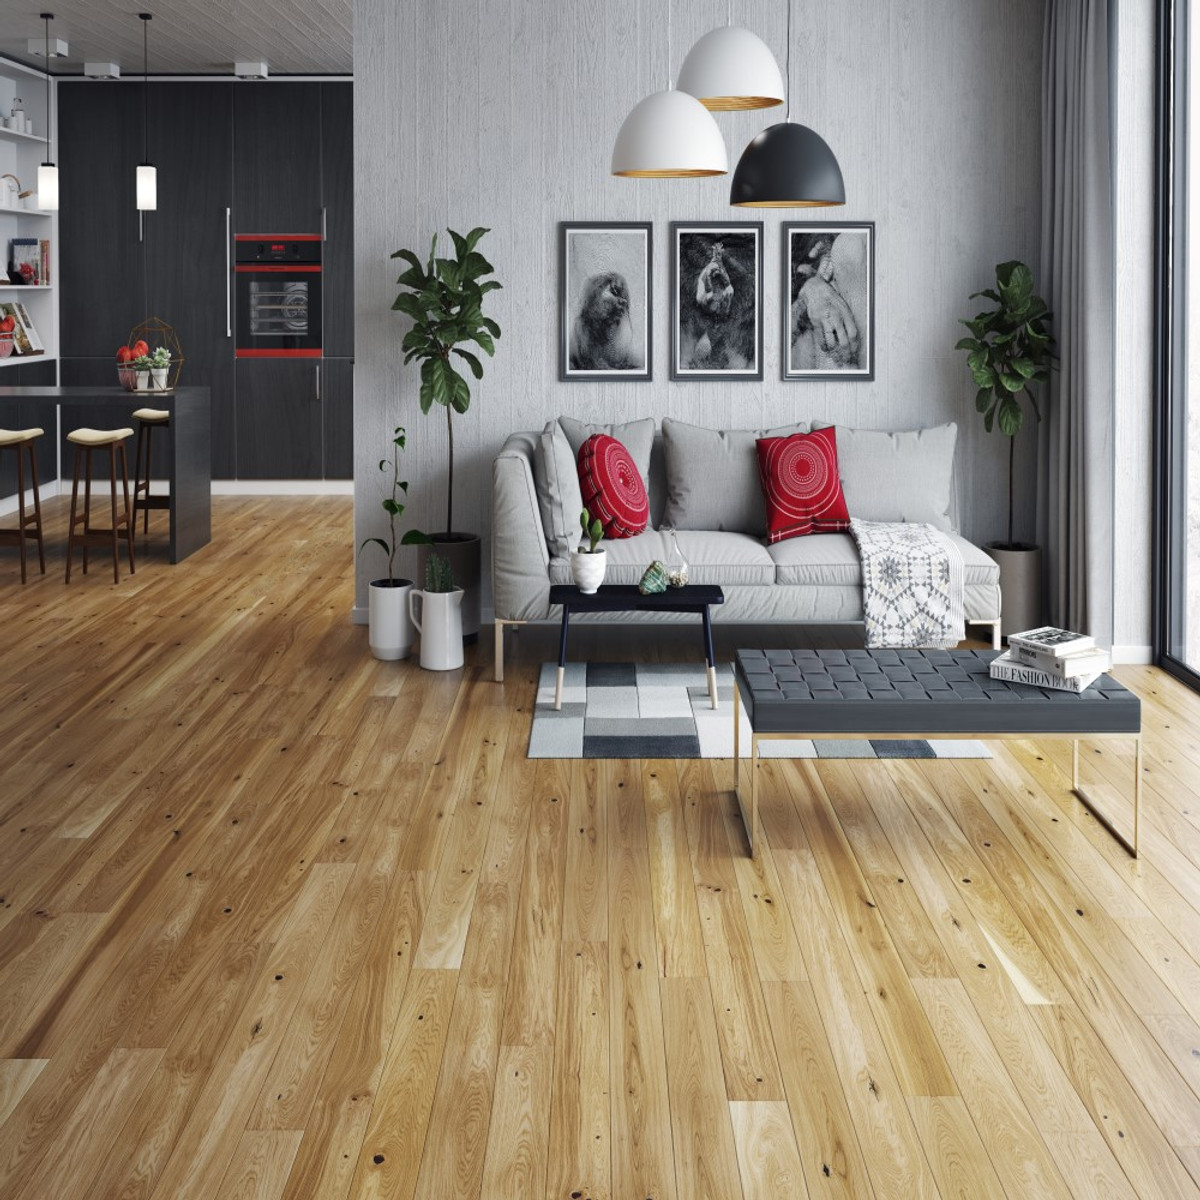 Tuscany Xpress Click Country Oak Lacq Engineered Wood Flooring ( Per 2.26m2 Pack ) www.tuscanytiles.co.uk